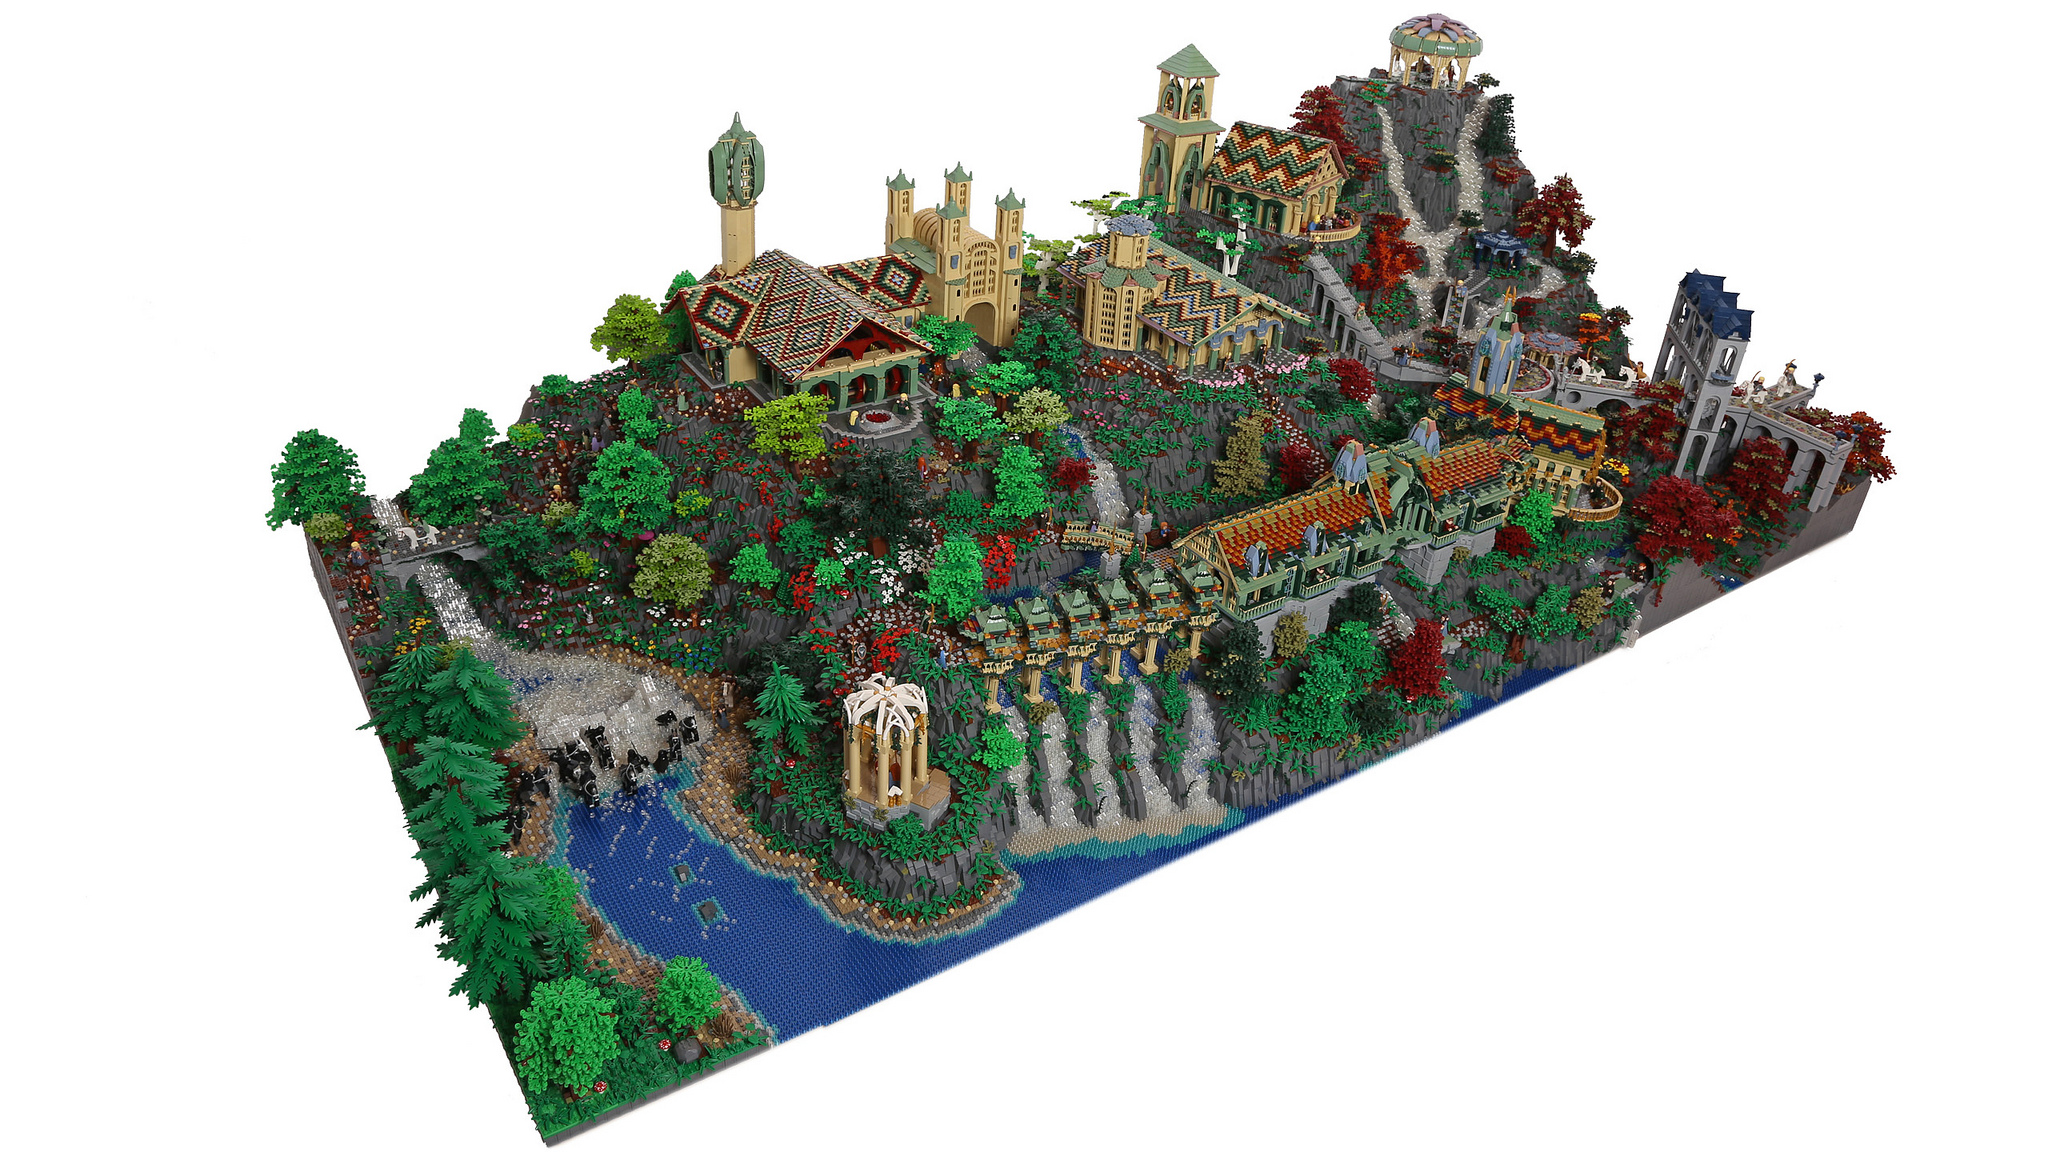 epic lego lord of the rings diorama took 200 000 bricks to